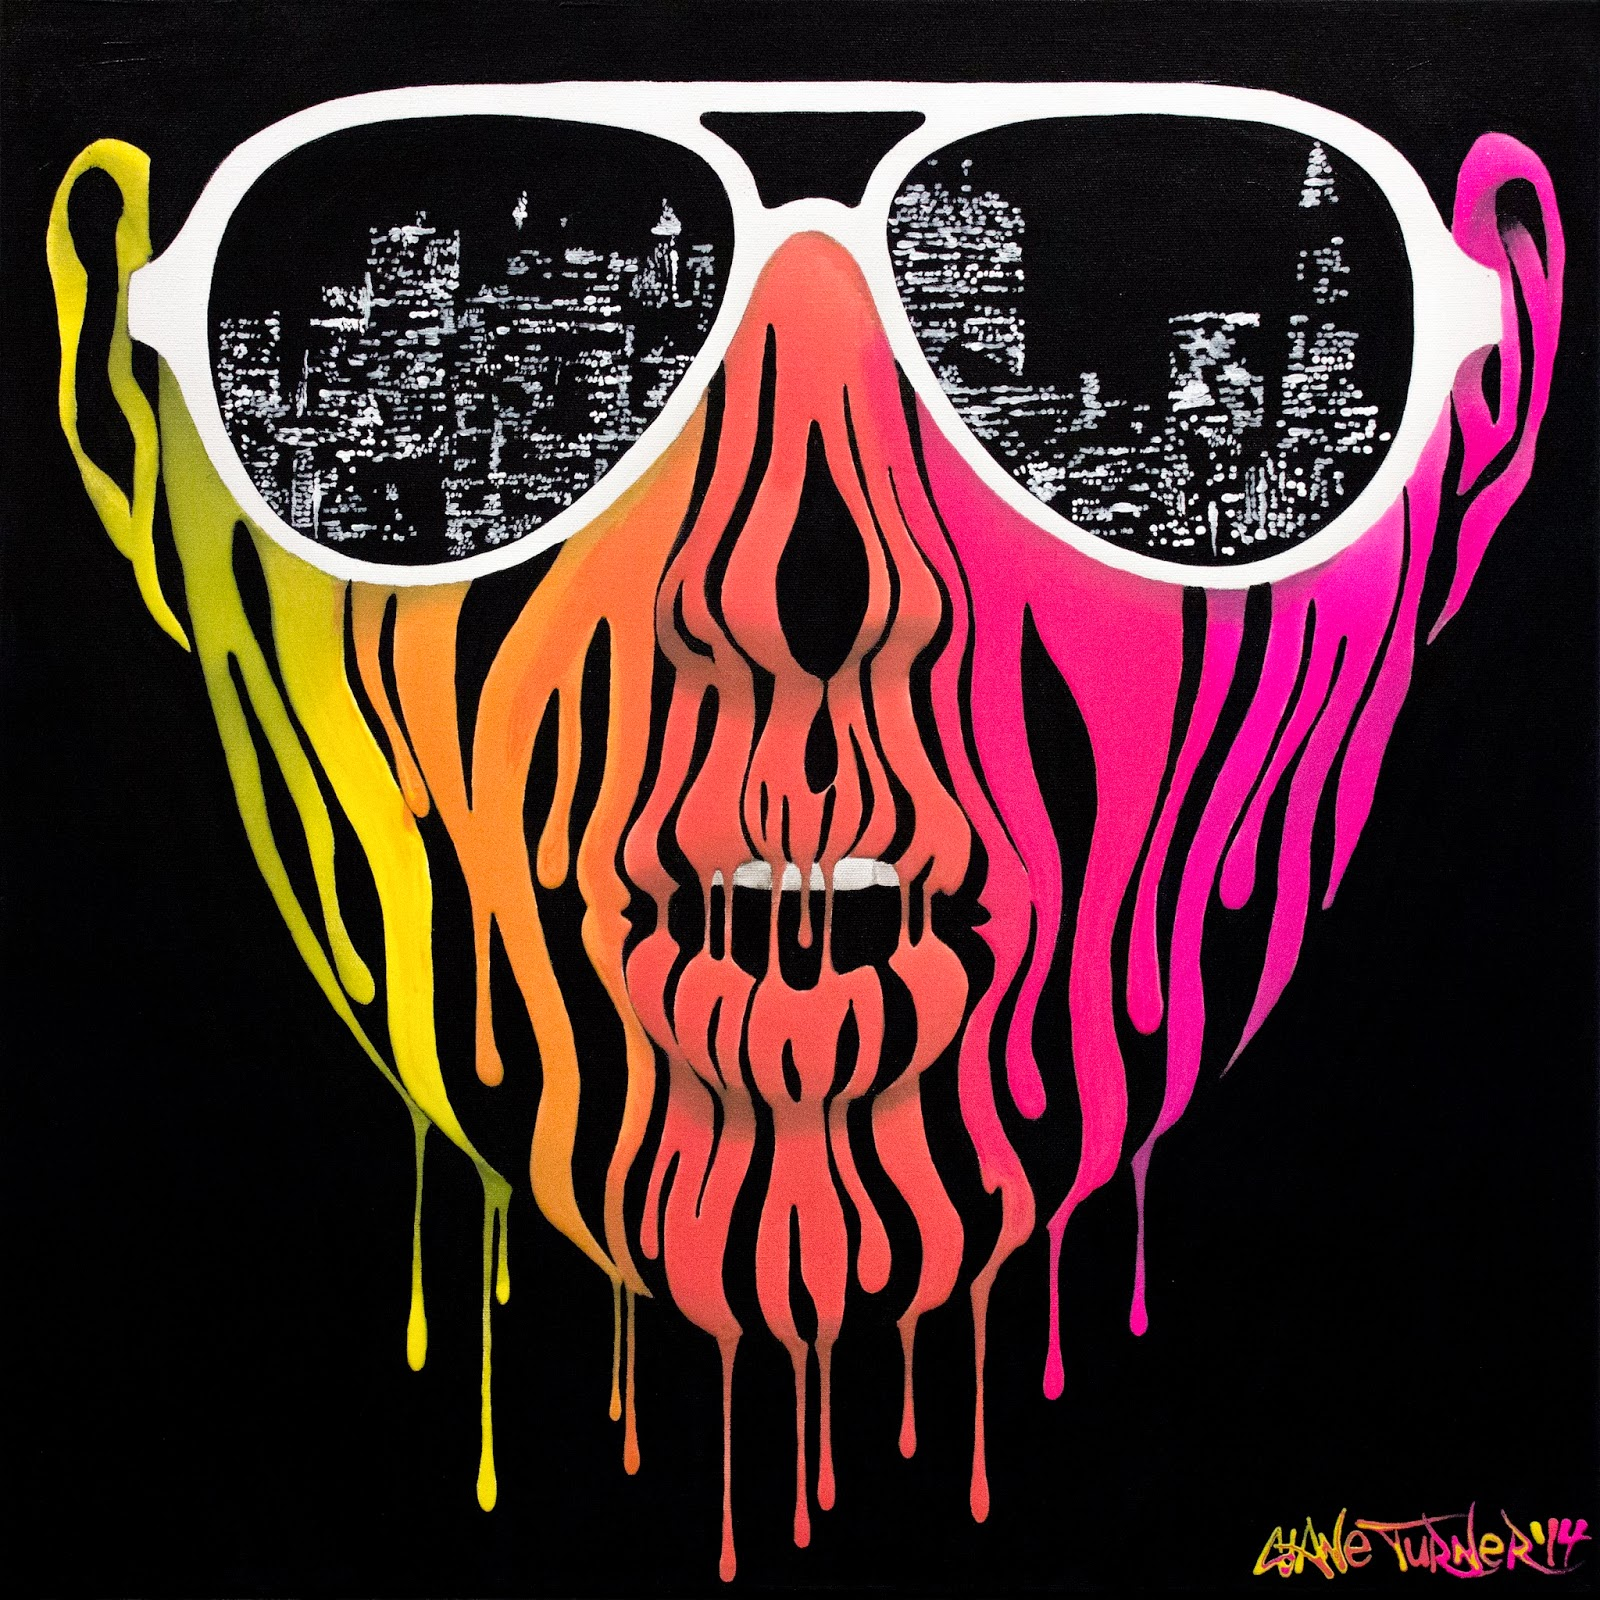 Acrylic painting of a woman's face made of dripping colorful neon acrylic paint, wearing sunglasses with the reflection of San Francisco skyline made of glowing lights. Album cover for California based band Citabria was made using this painting.